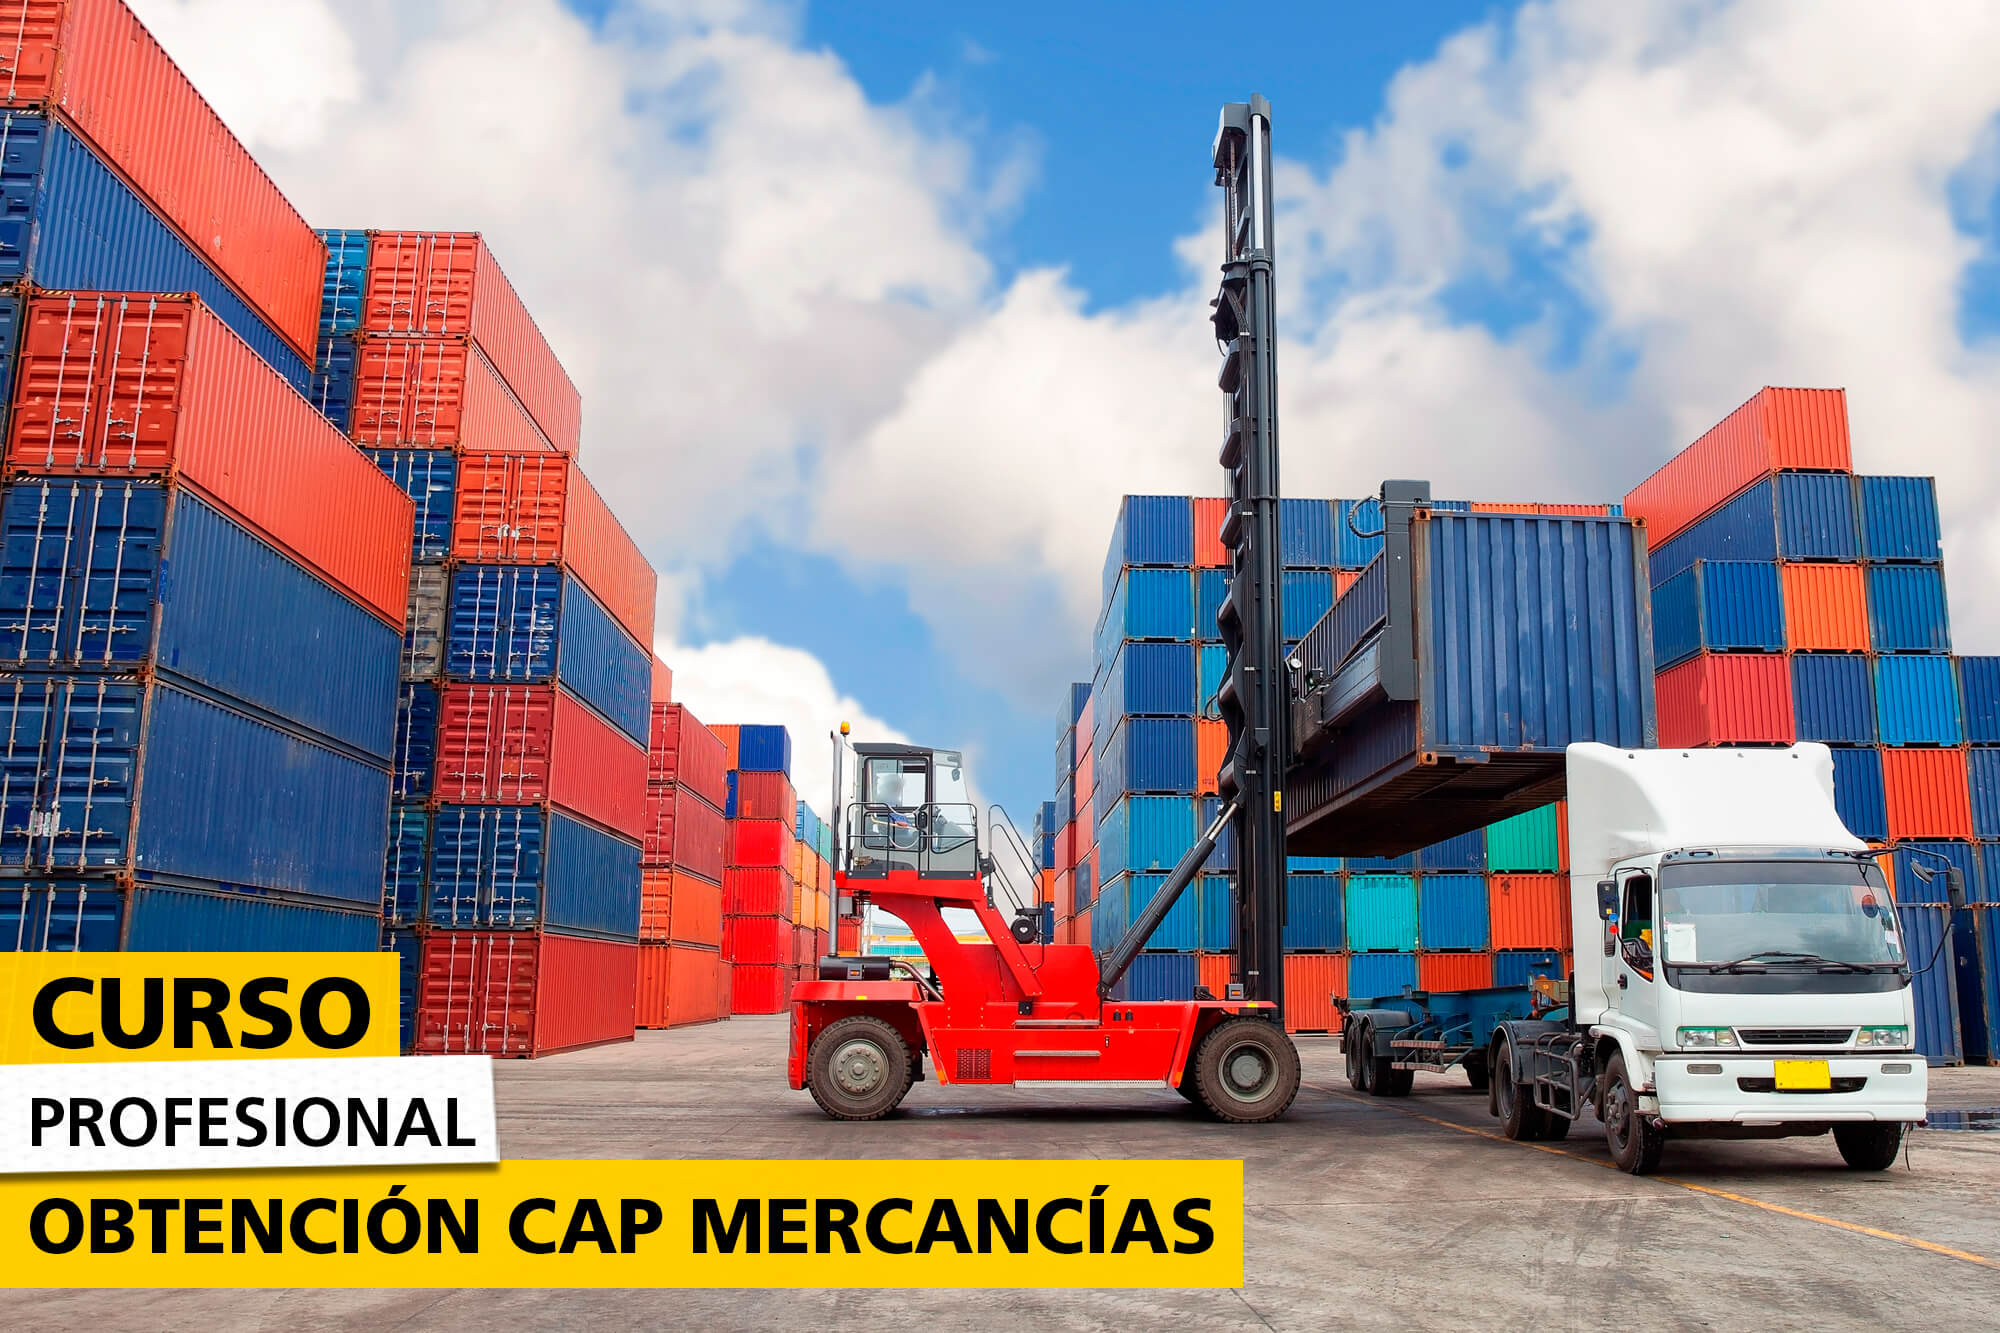 C-obtencion-cap-mercancias-img-destacada